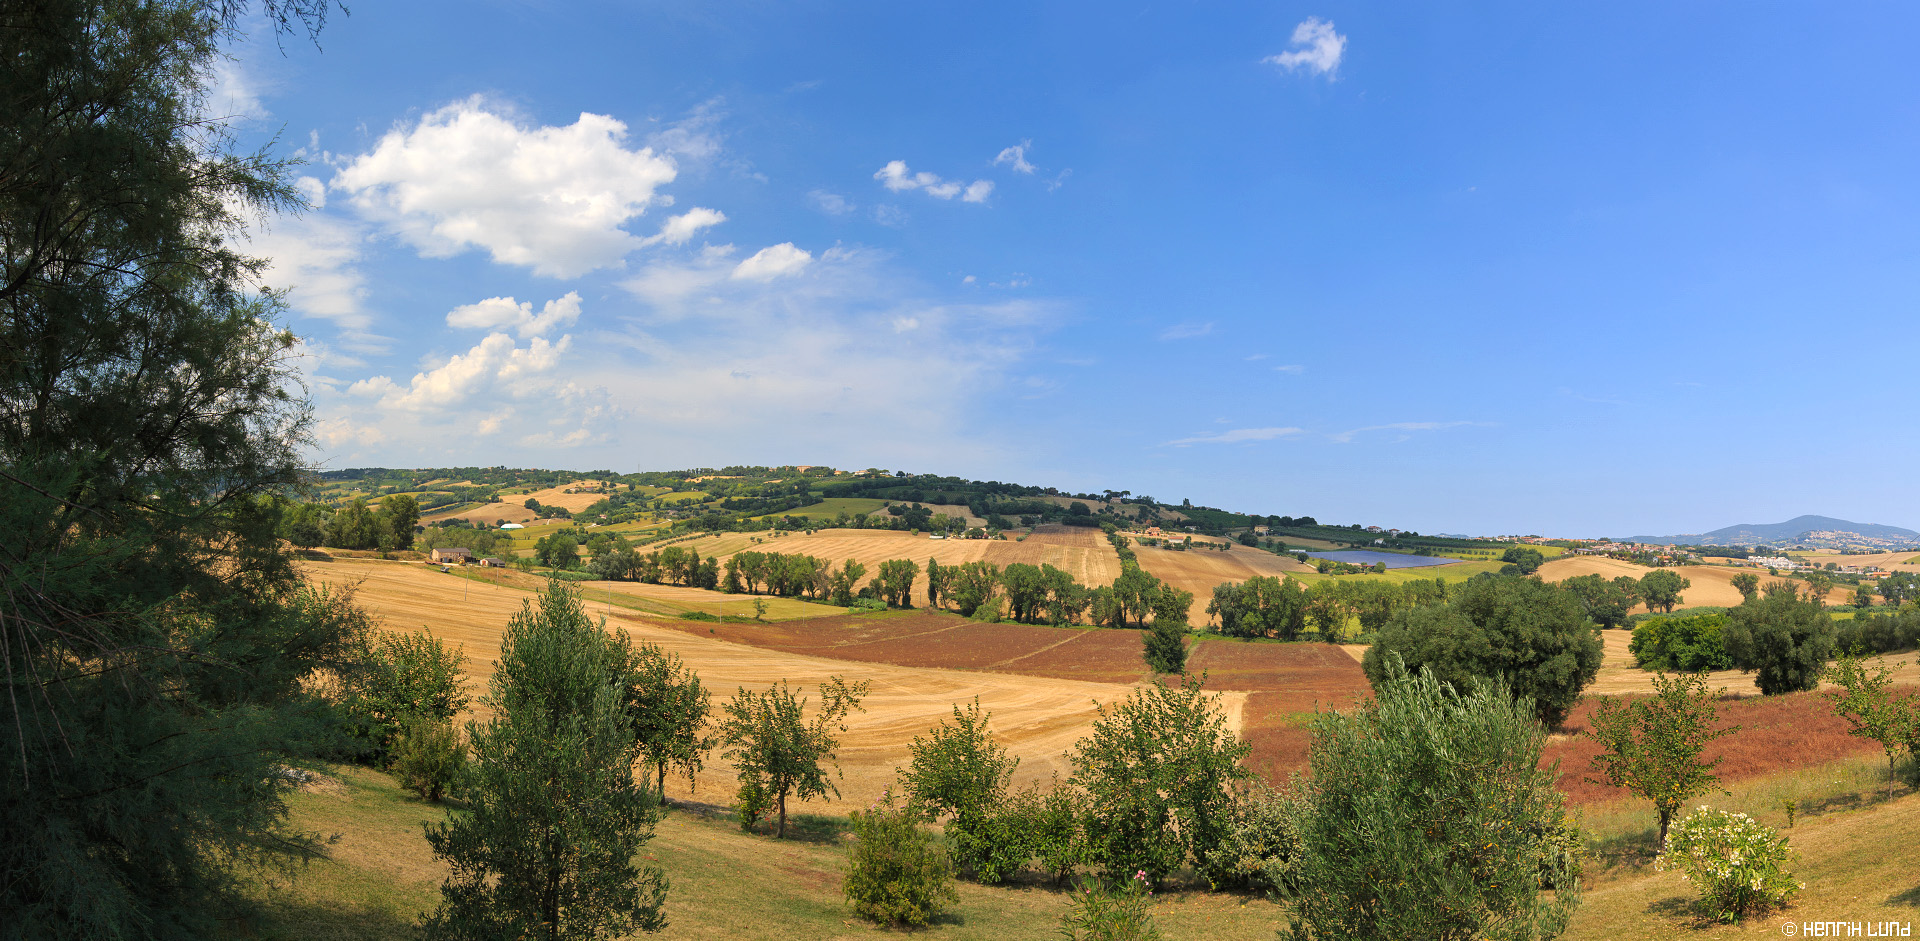 Panoramic view from the hills of Osimo, Marche, Italy to the east. July 2015.